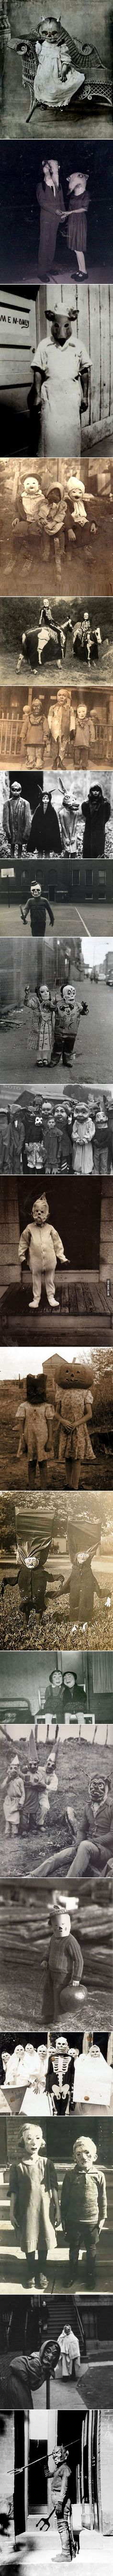 How haloween costumes once looked like, 20's kids will remember